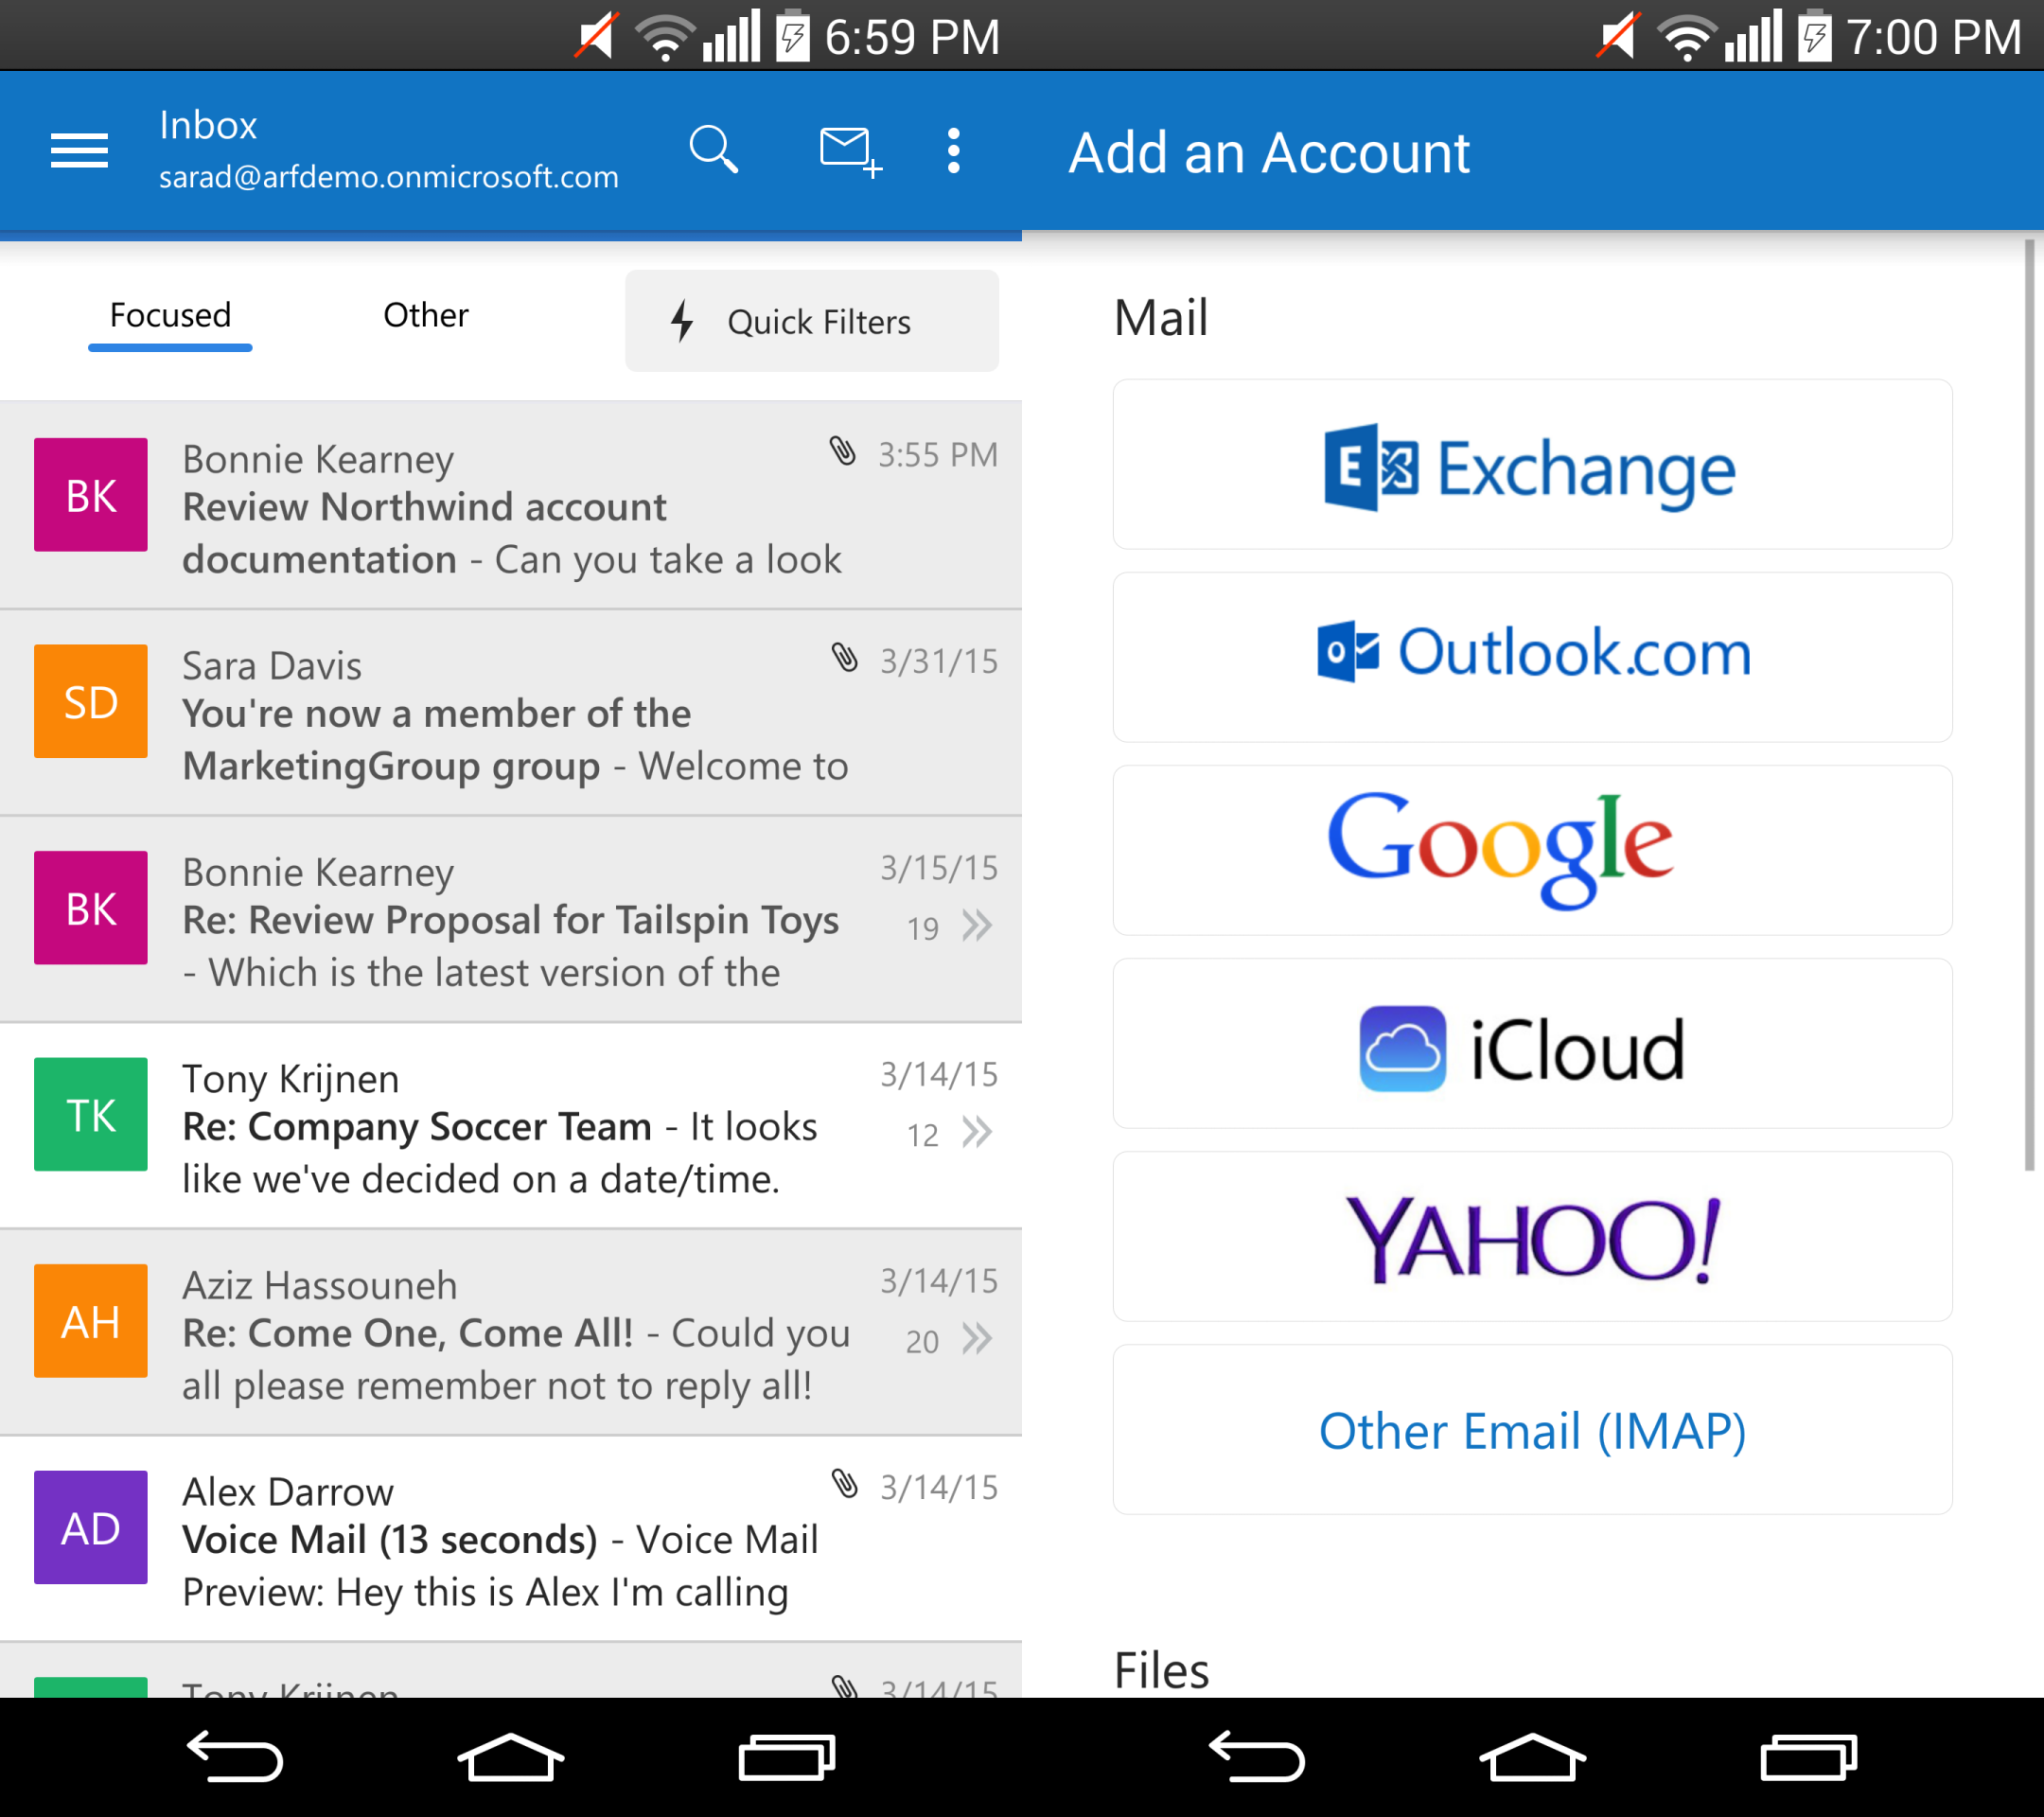 Microsoft launches Outlook for Android out of preview | VentureBeat ...